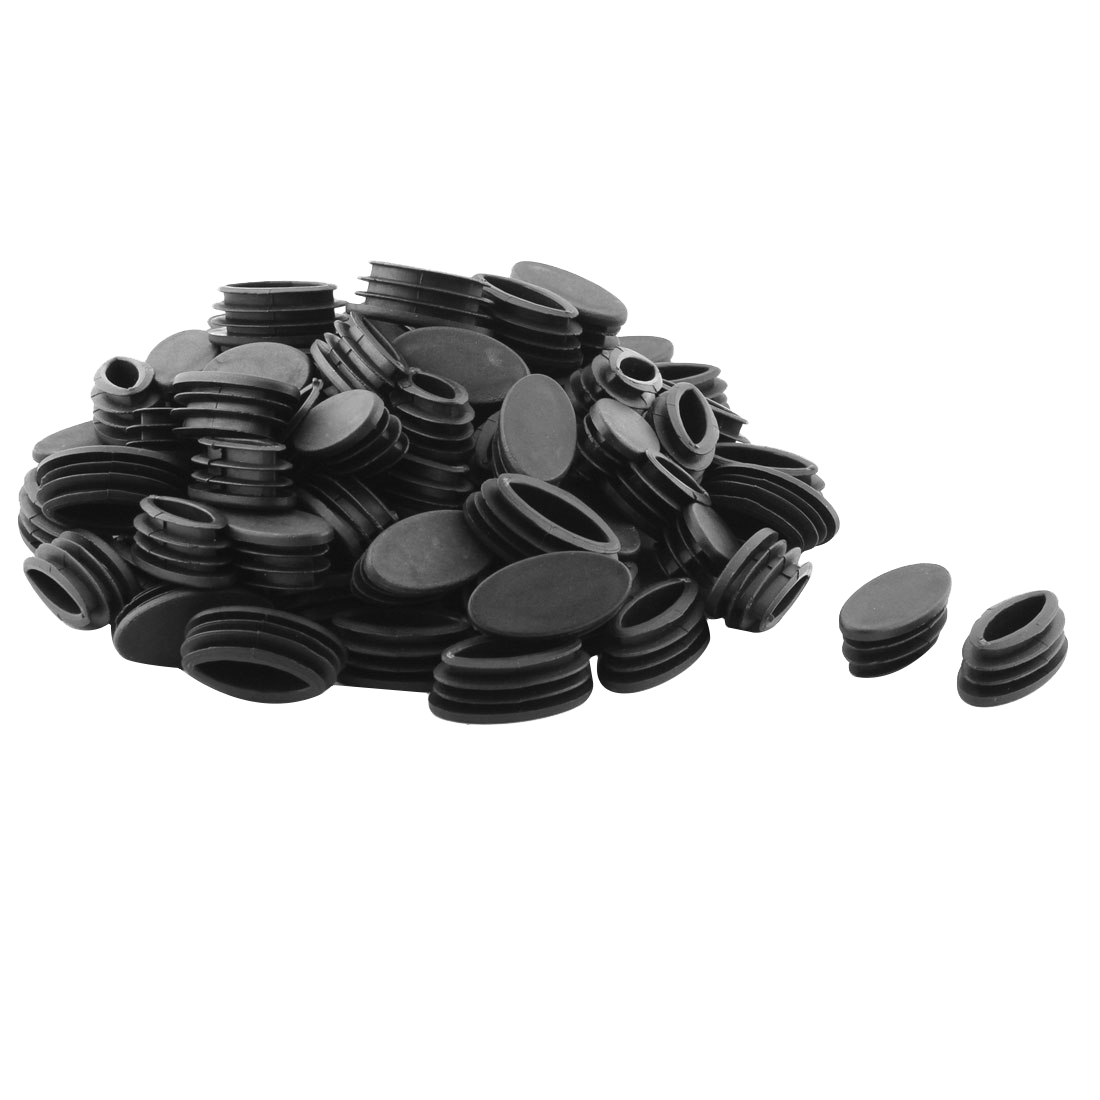 Furniture Table Leg Plastic Oval Tube Pipe Insert End Cap Black 20 x 40mm 80 Pcs